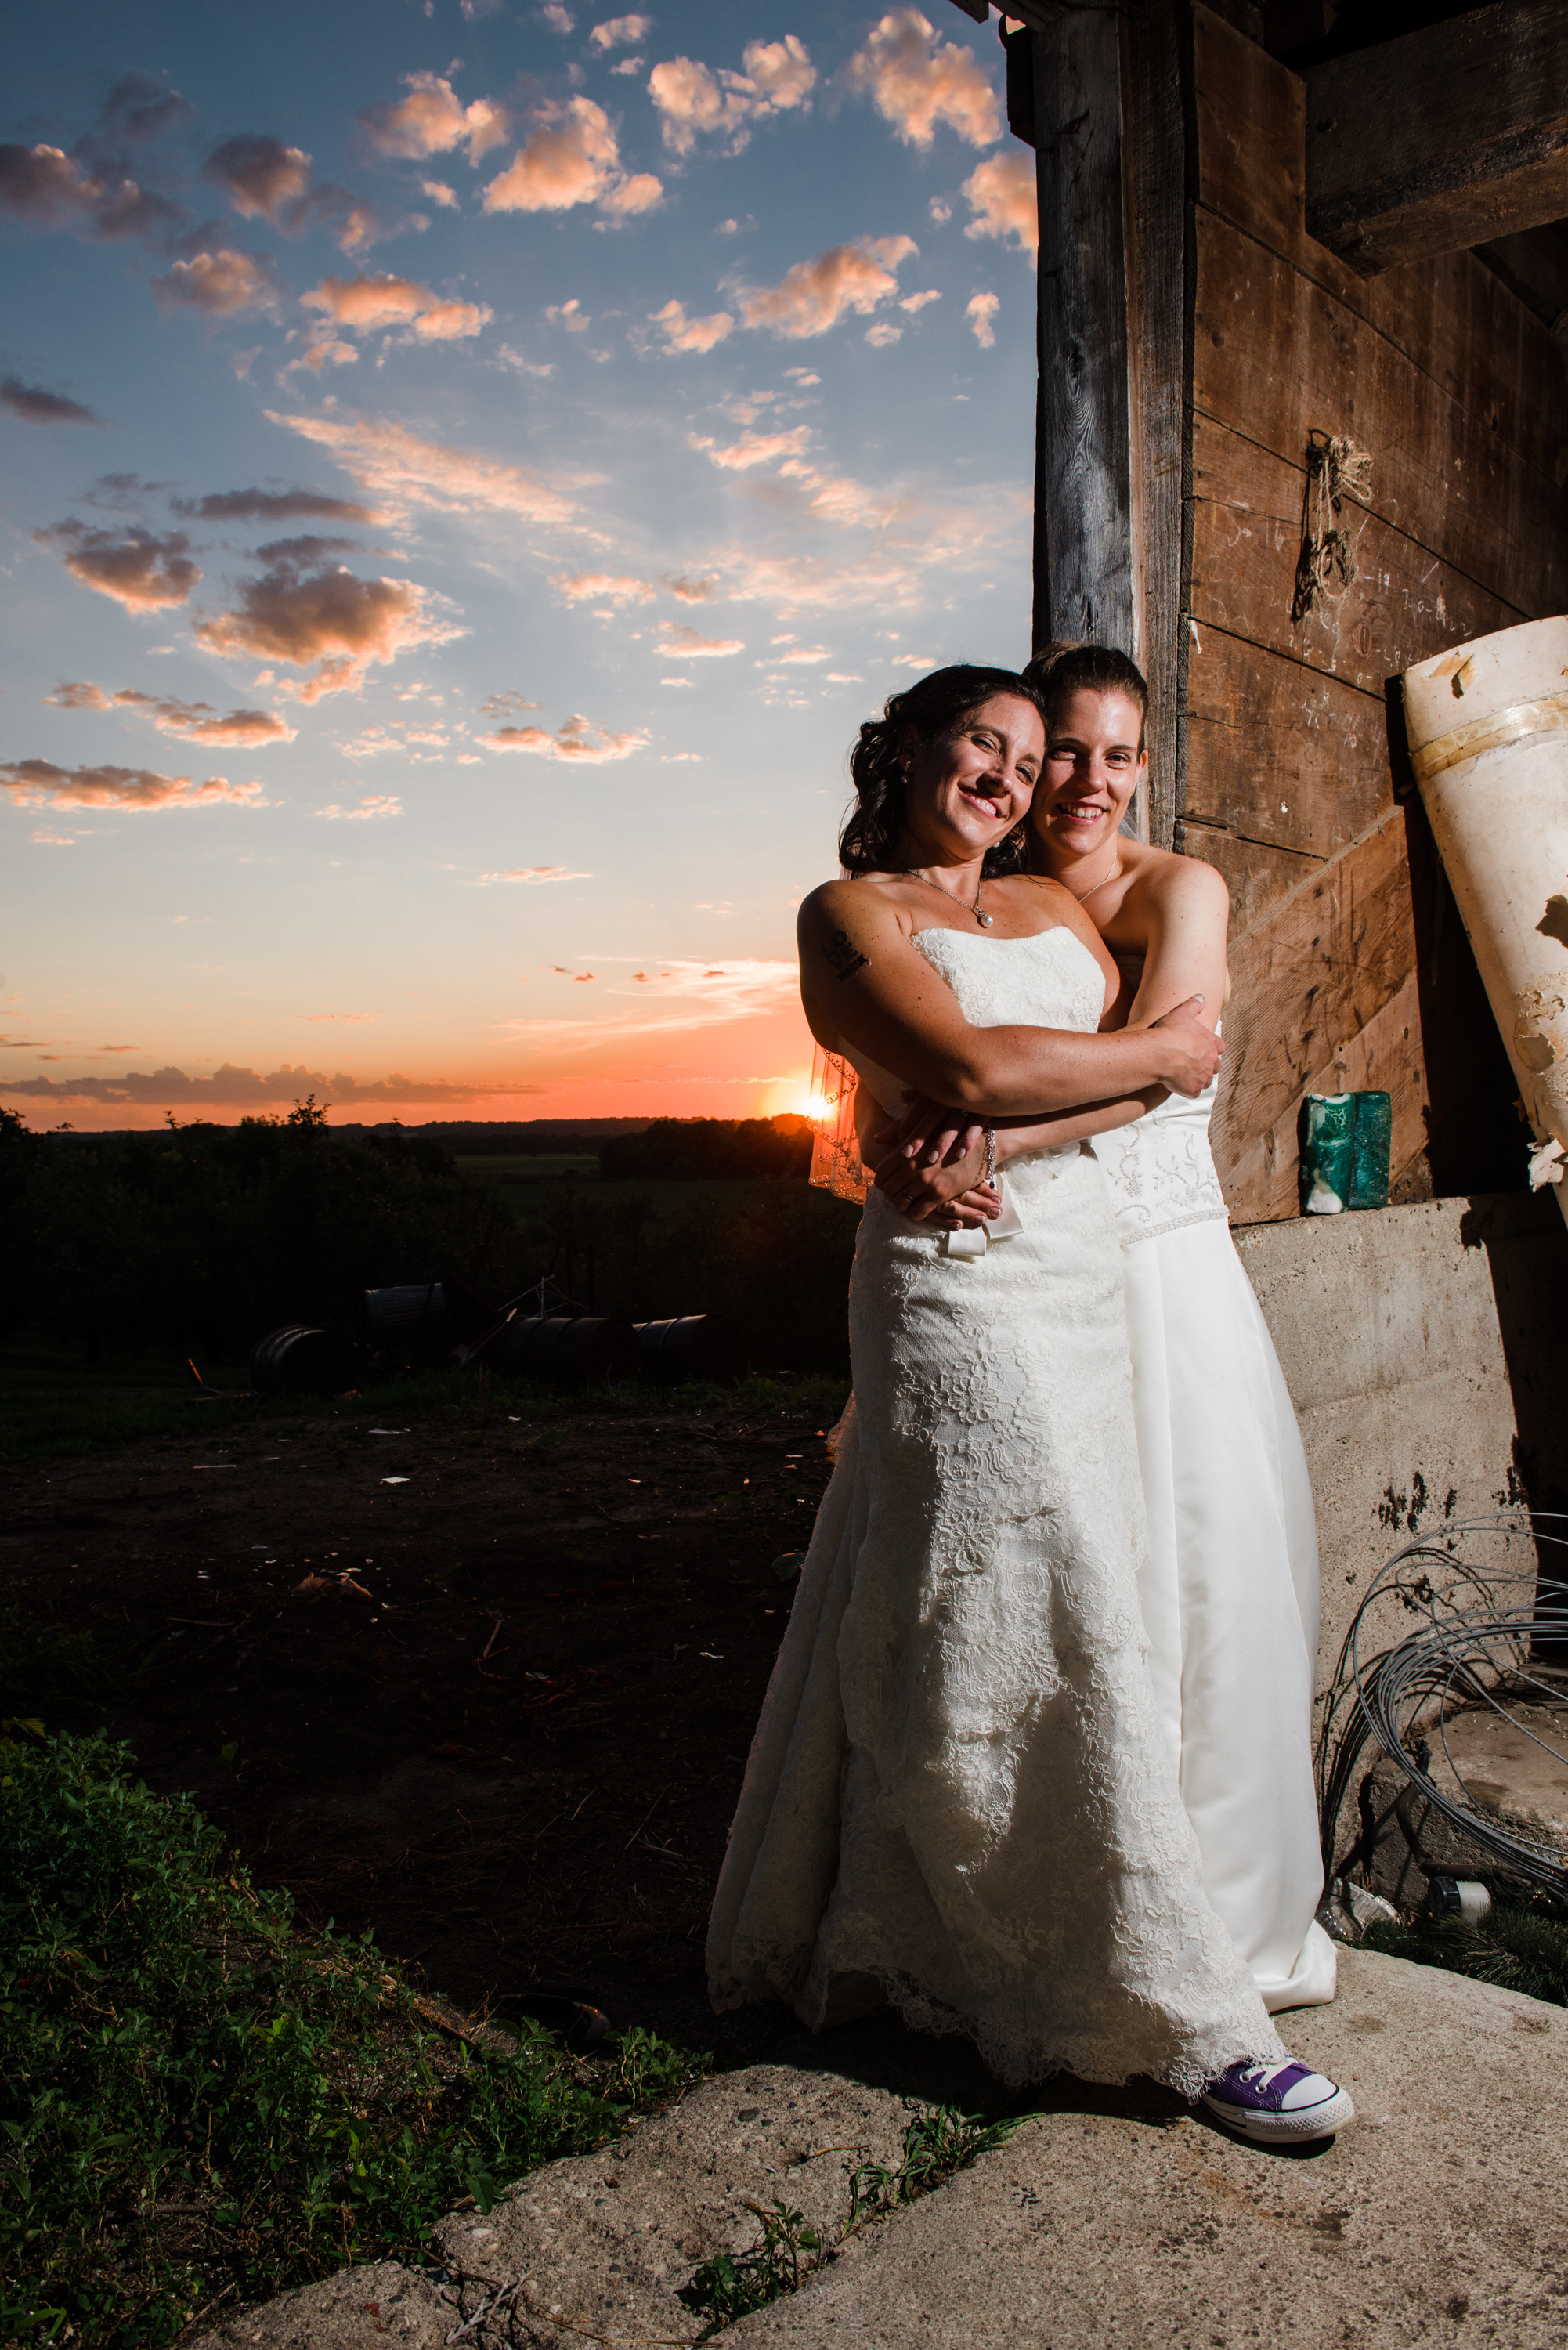 Minnesota LGBT Wedding Photography - Megan and Trista - RKH Images - Portraits (452 of 490).jpg